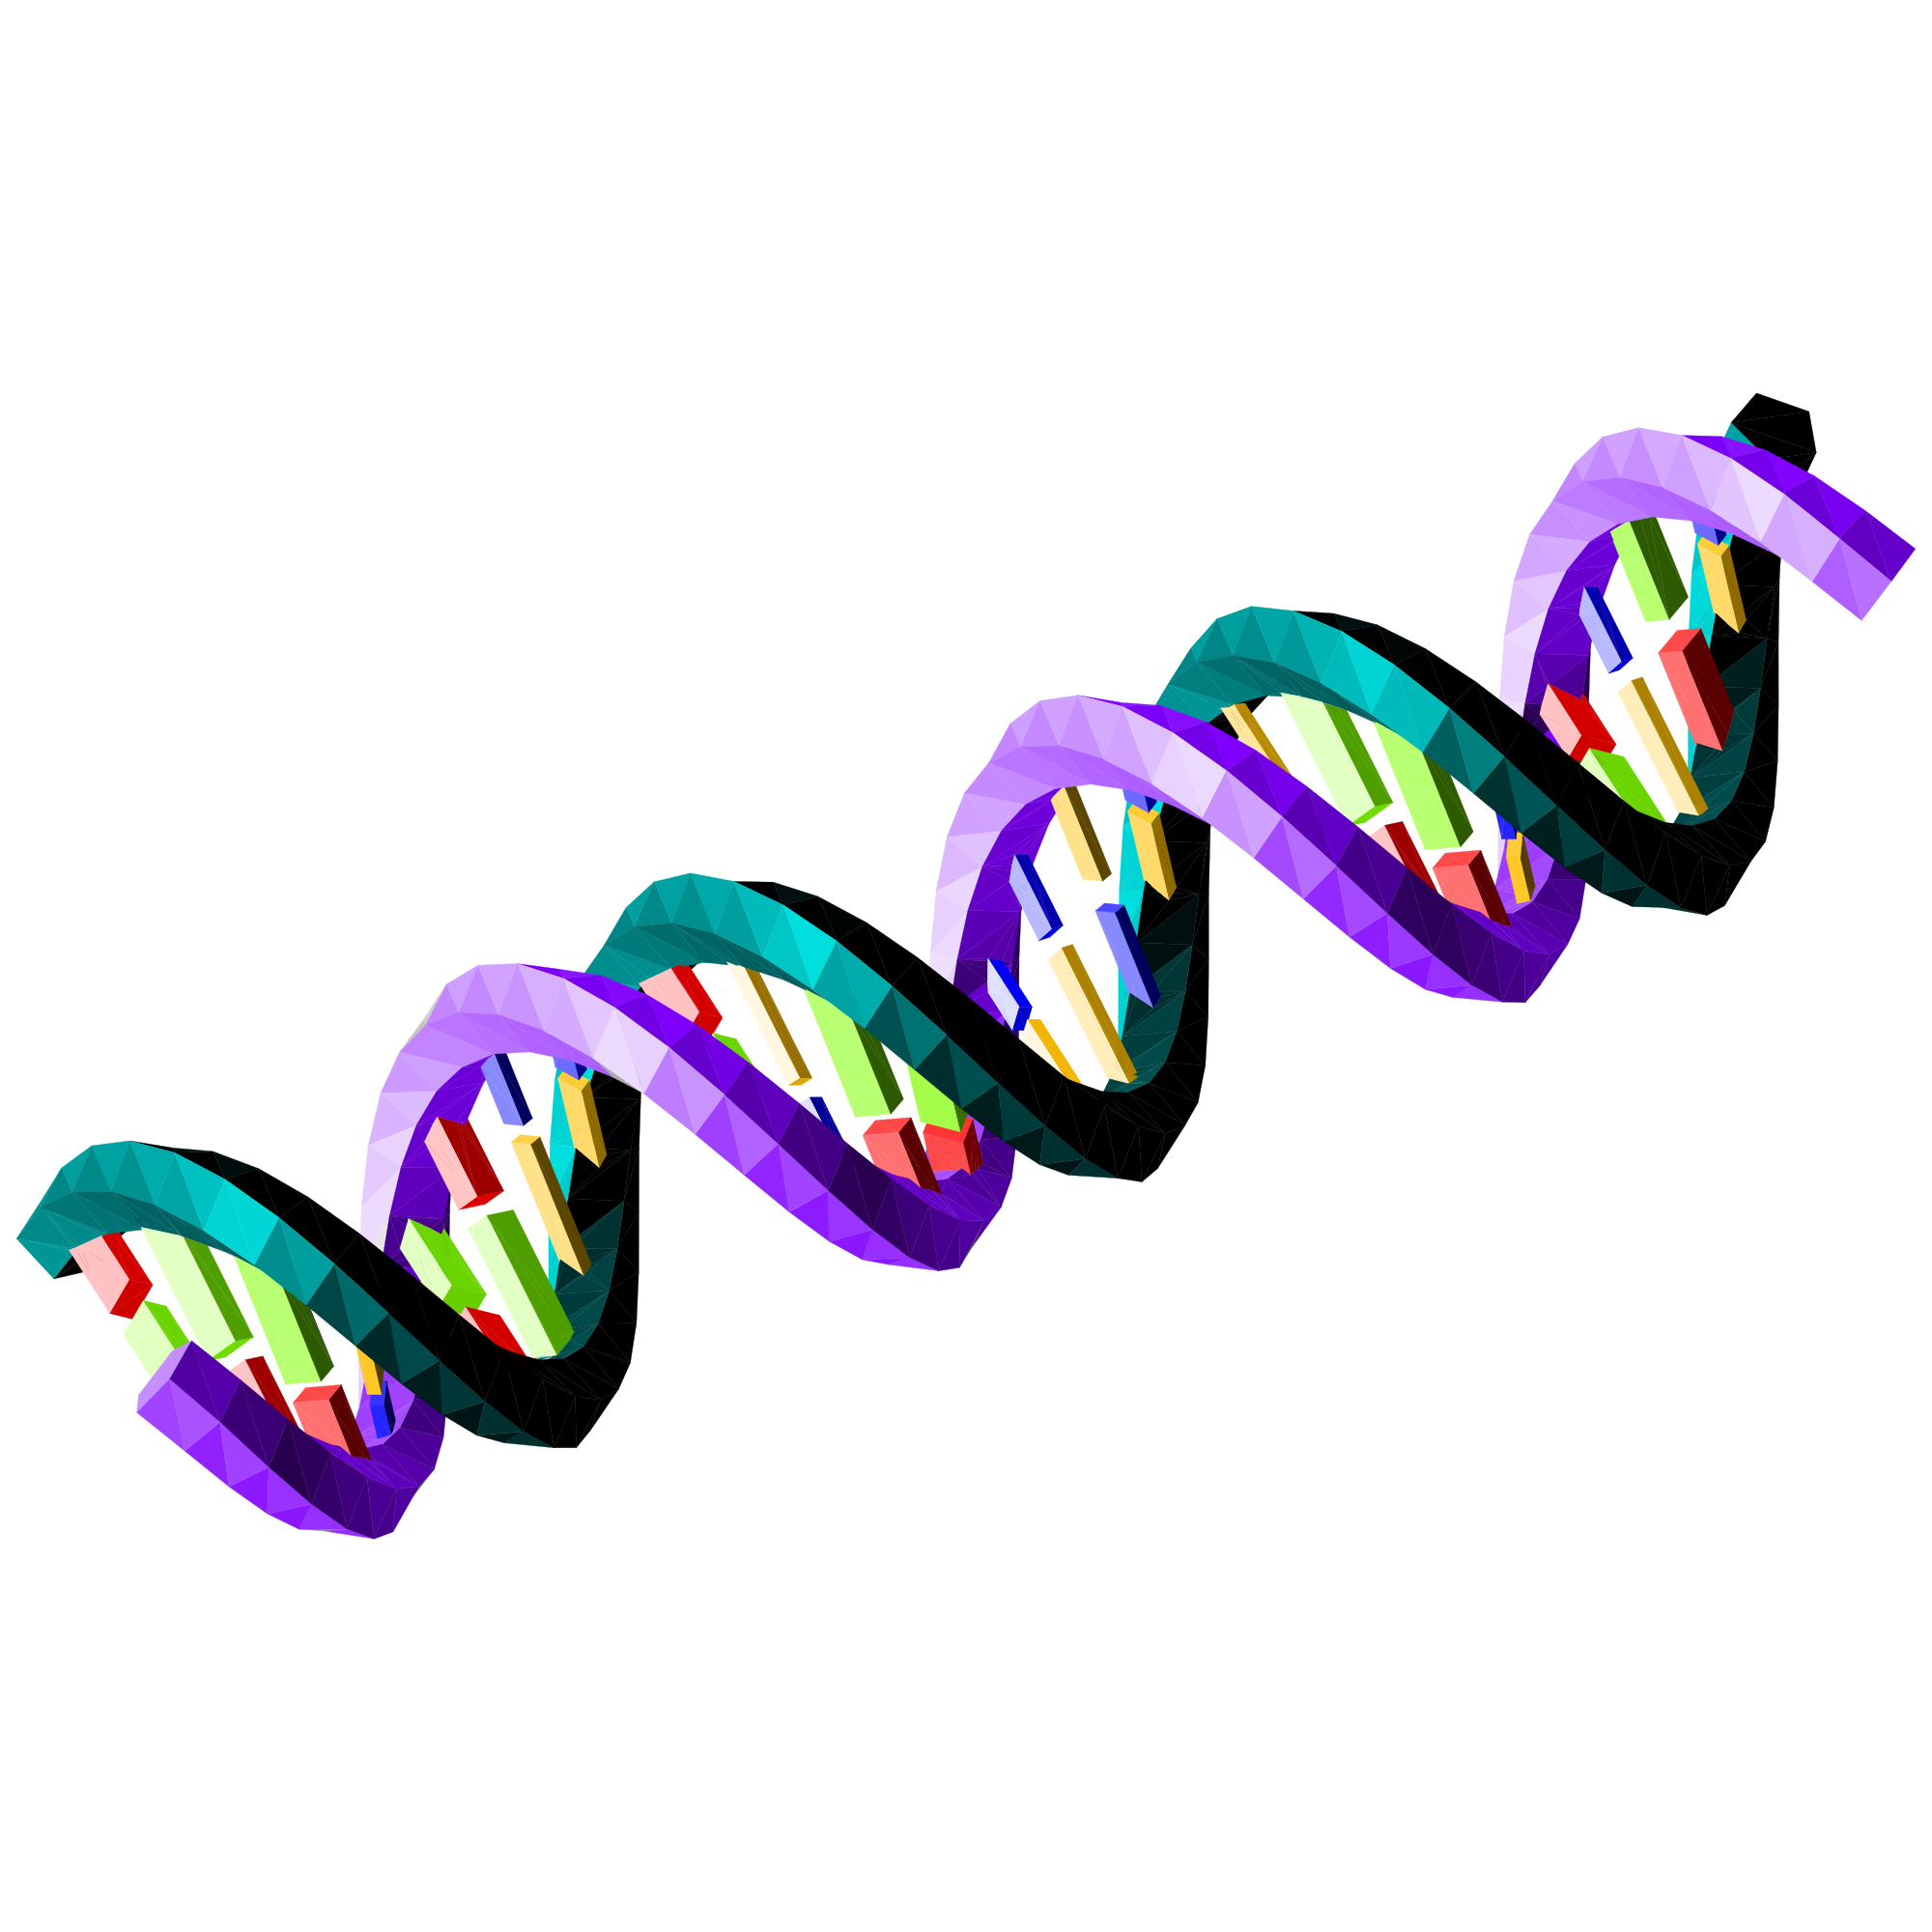 Dna strand png. File double stranded sequence